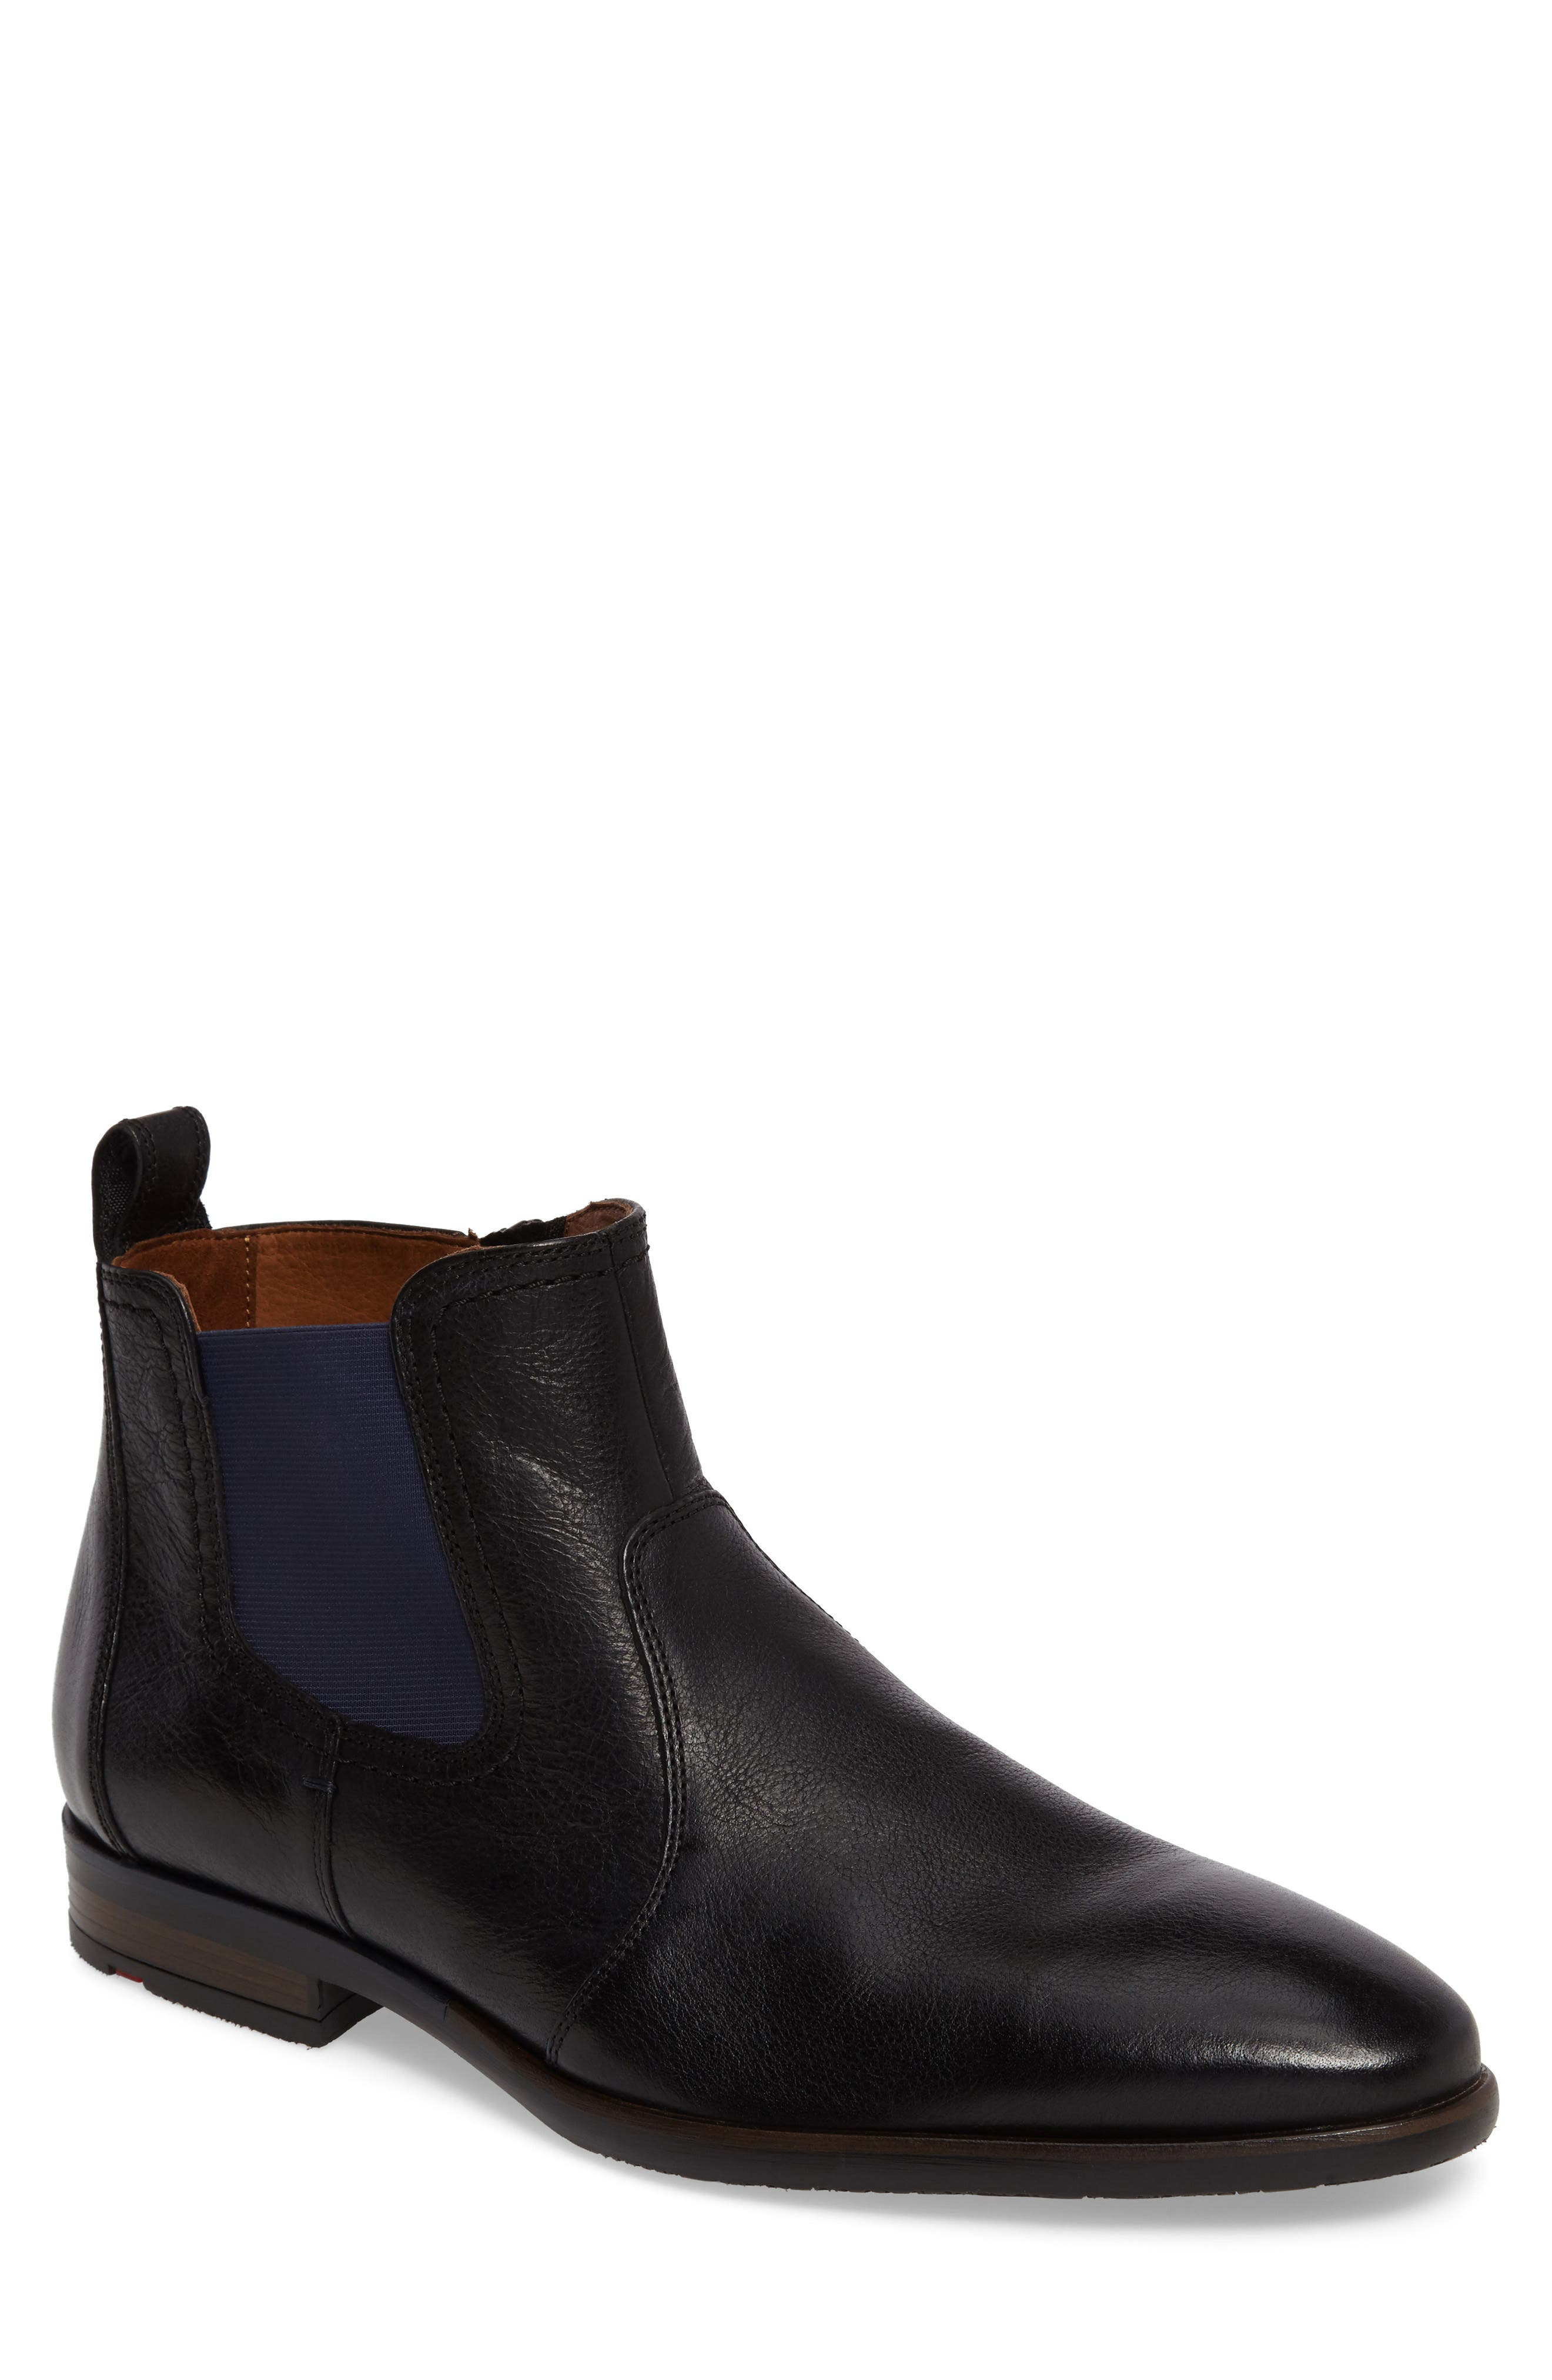 Dylan Chelsea Boot,                             Main thumbnail 1, color,